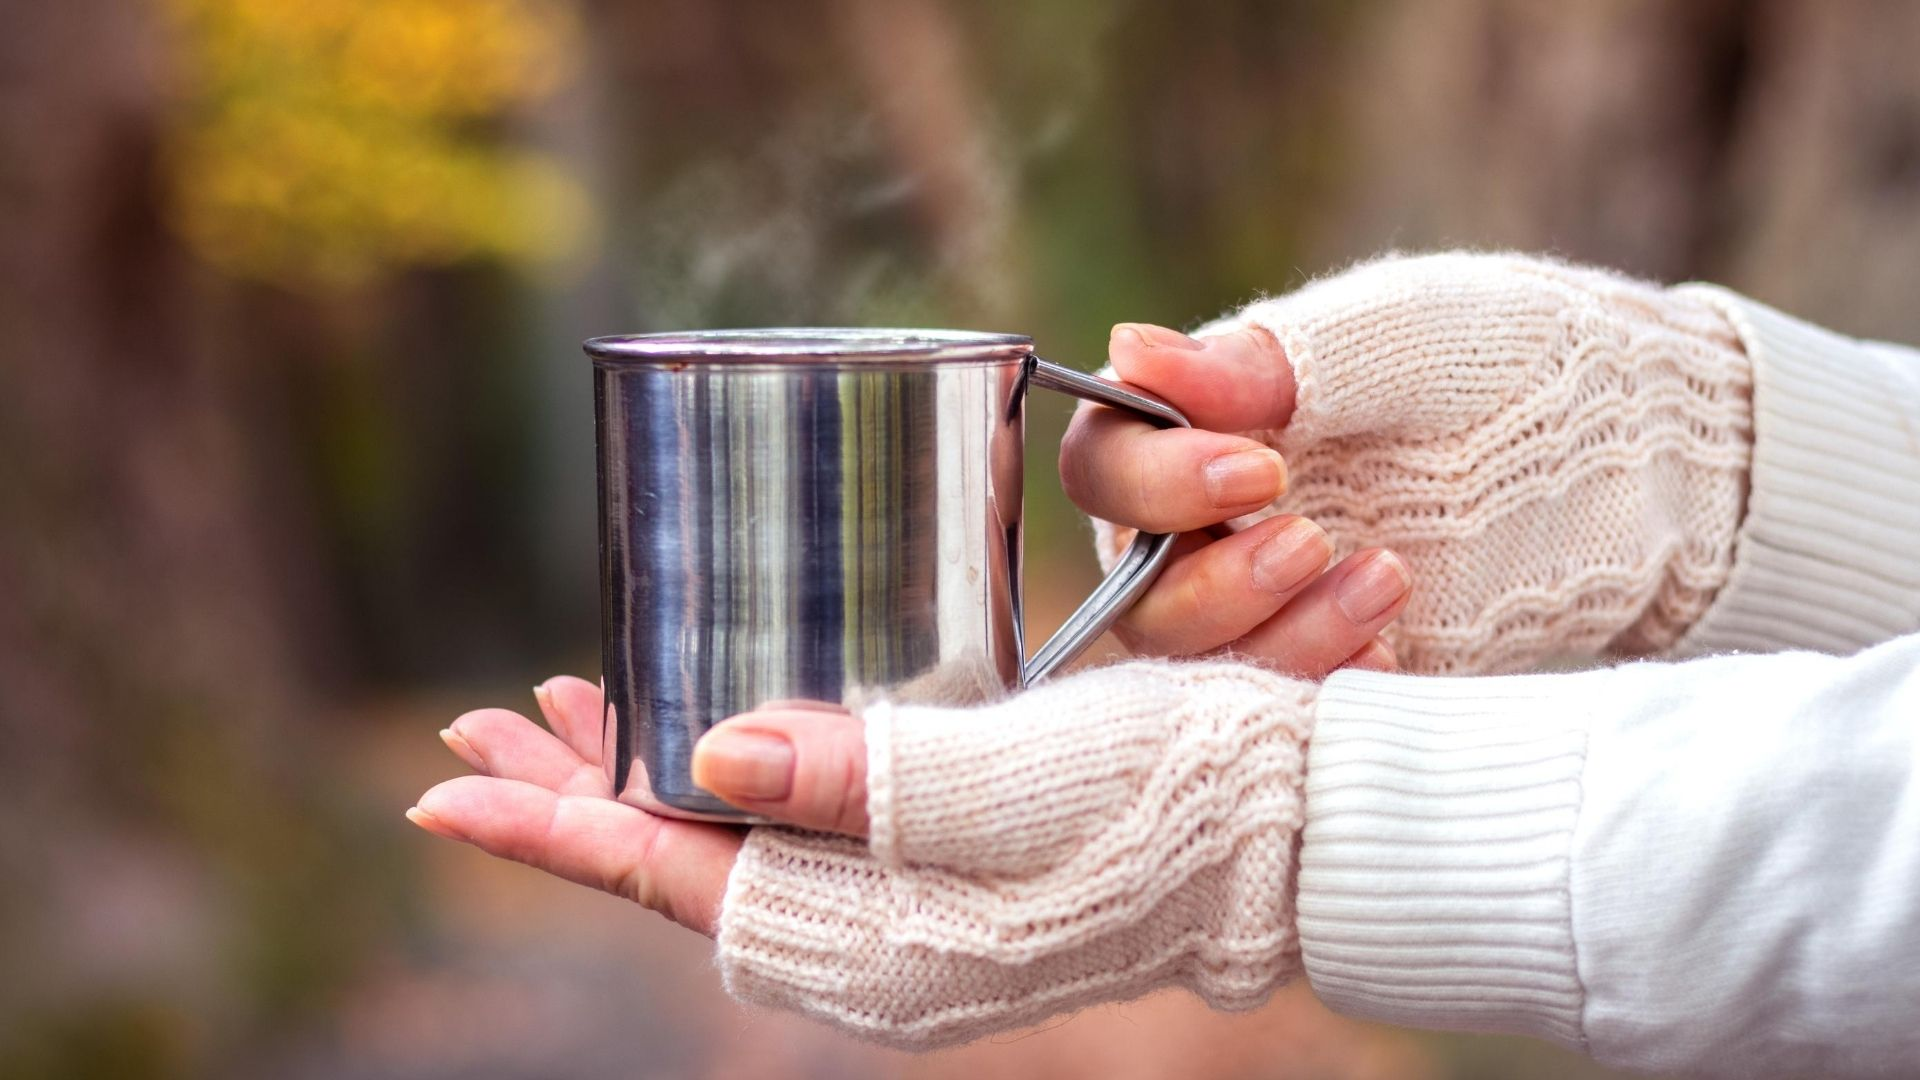 Woman wearing a pair of fingerless gloves holds a hot tin cup of tea.